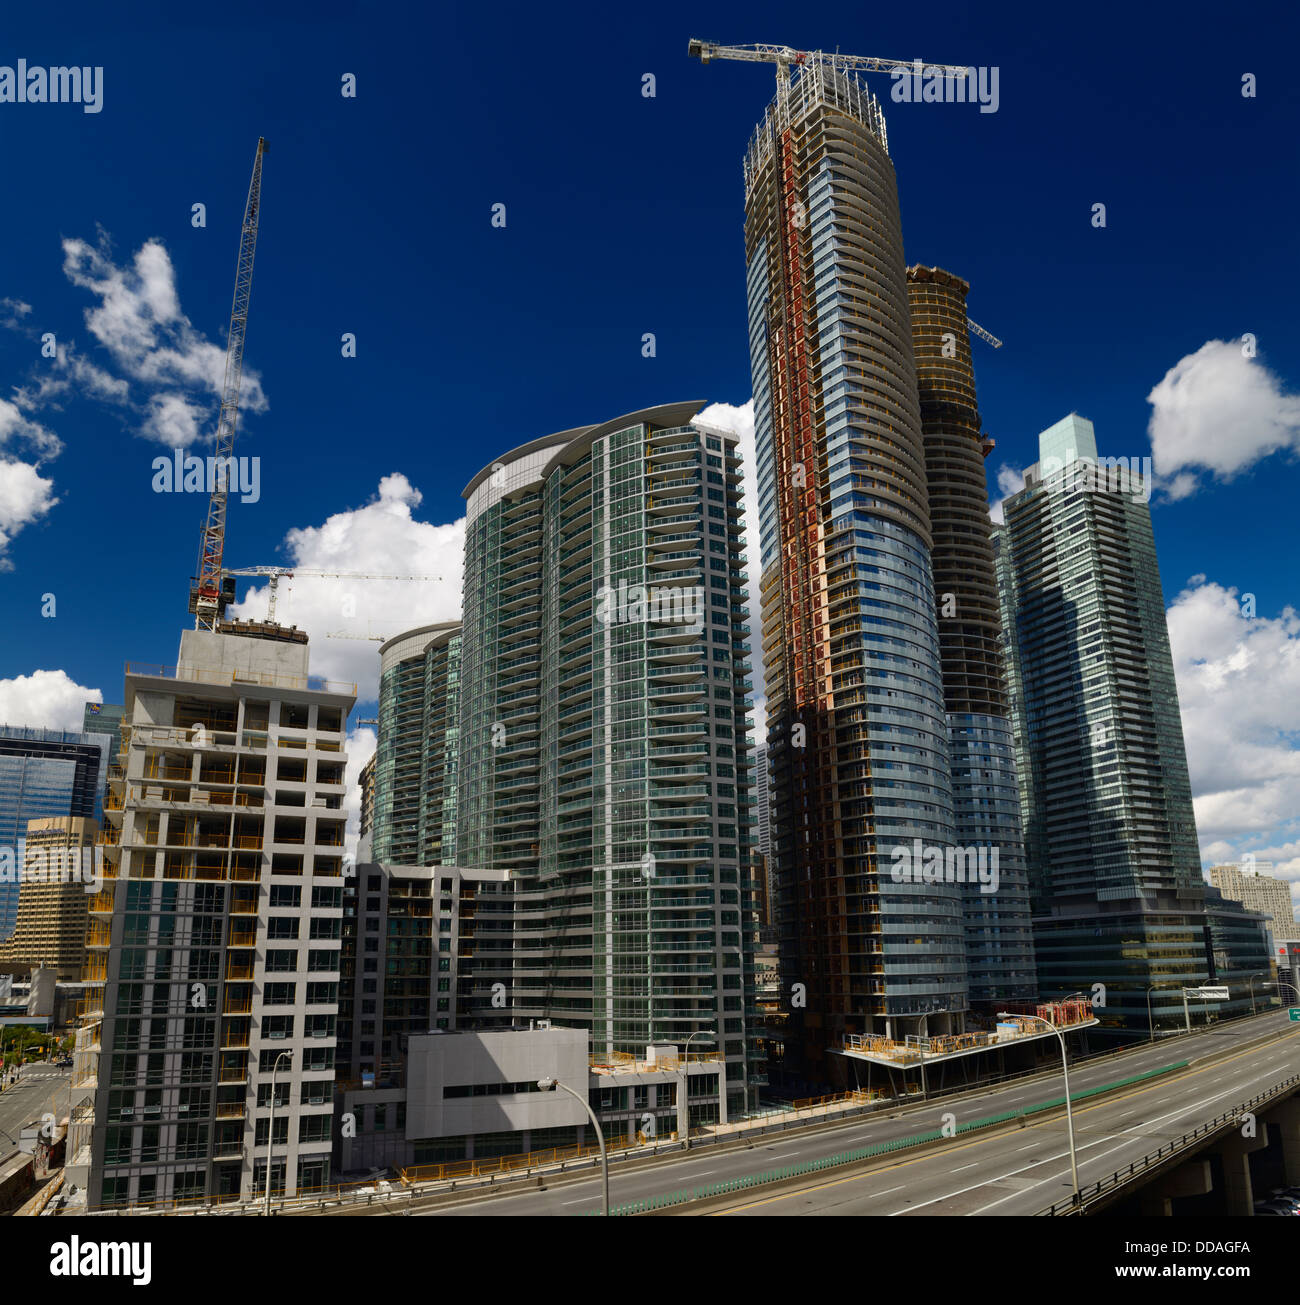 Highrise condominium construction along the Gardiner Expressway Toronto near Harbourfront - Stock Image